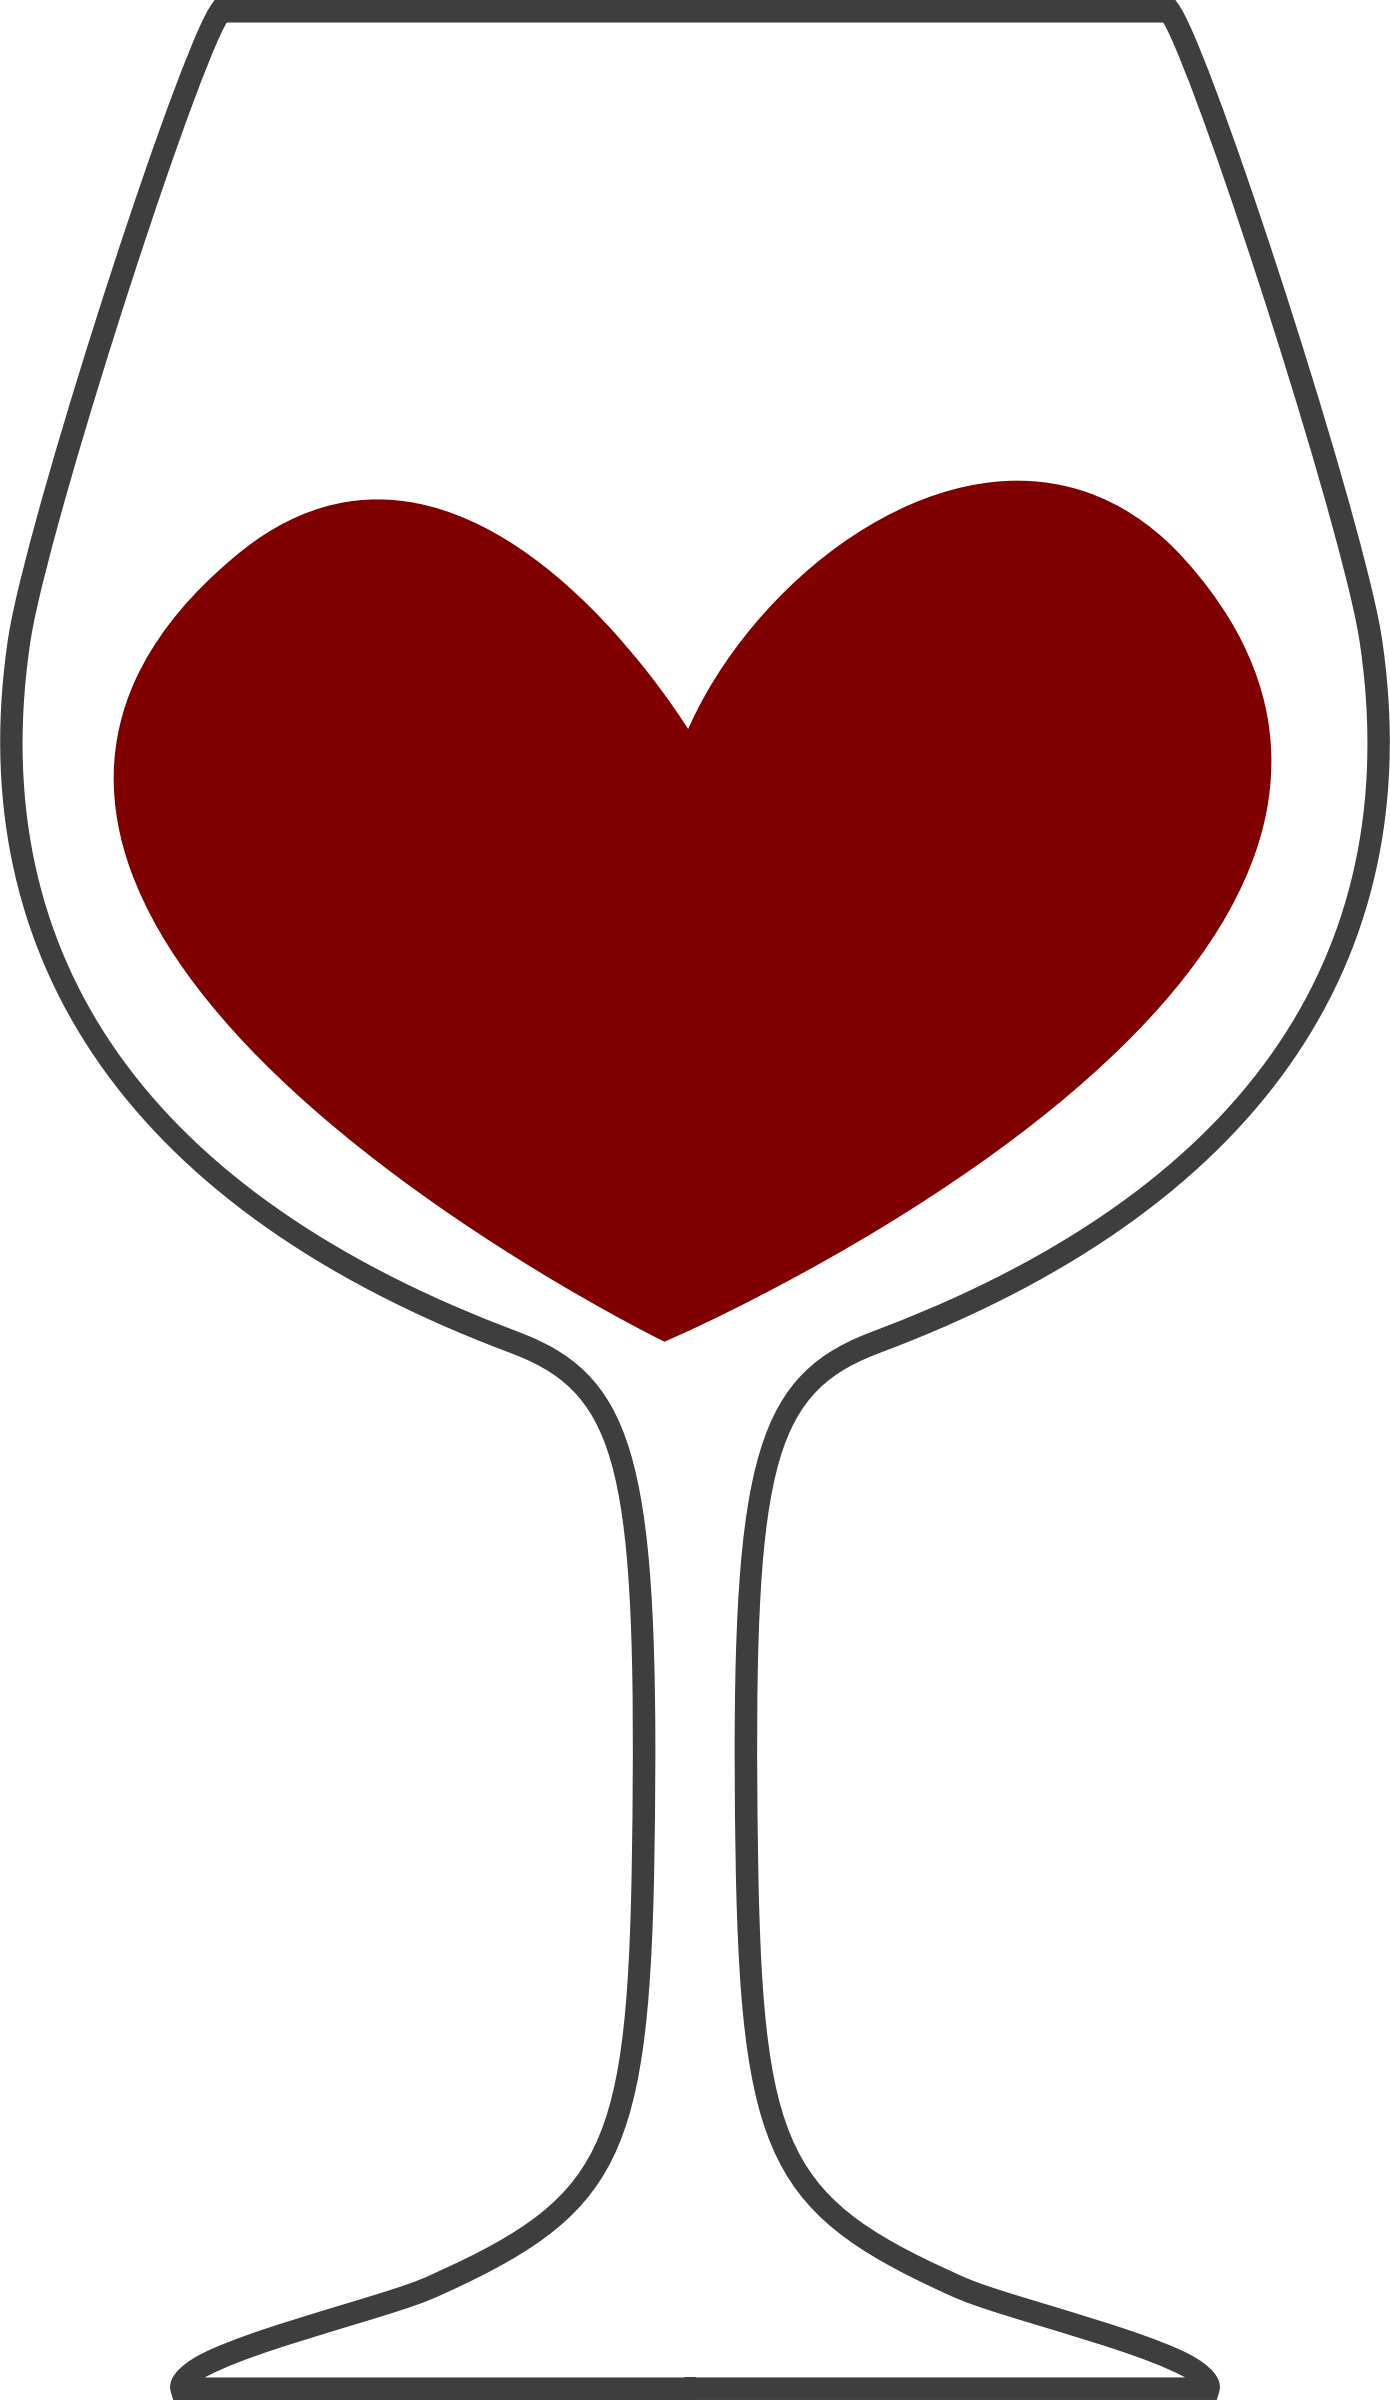 Wine heart clipart graphic free stock Clipart - Love of red wine graphic free stock